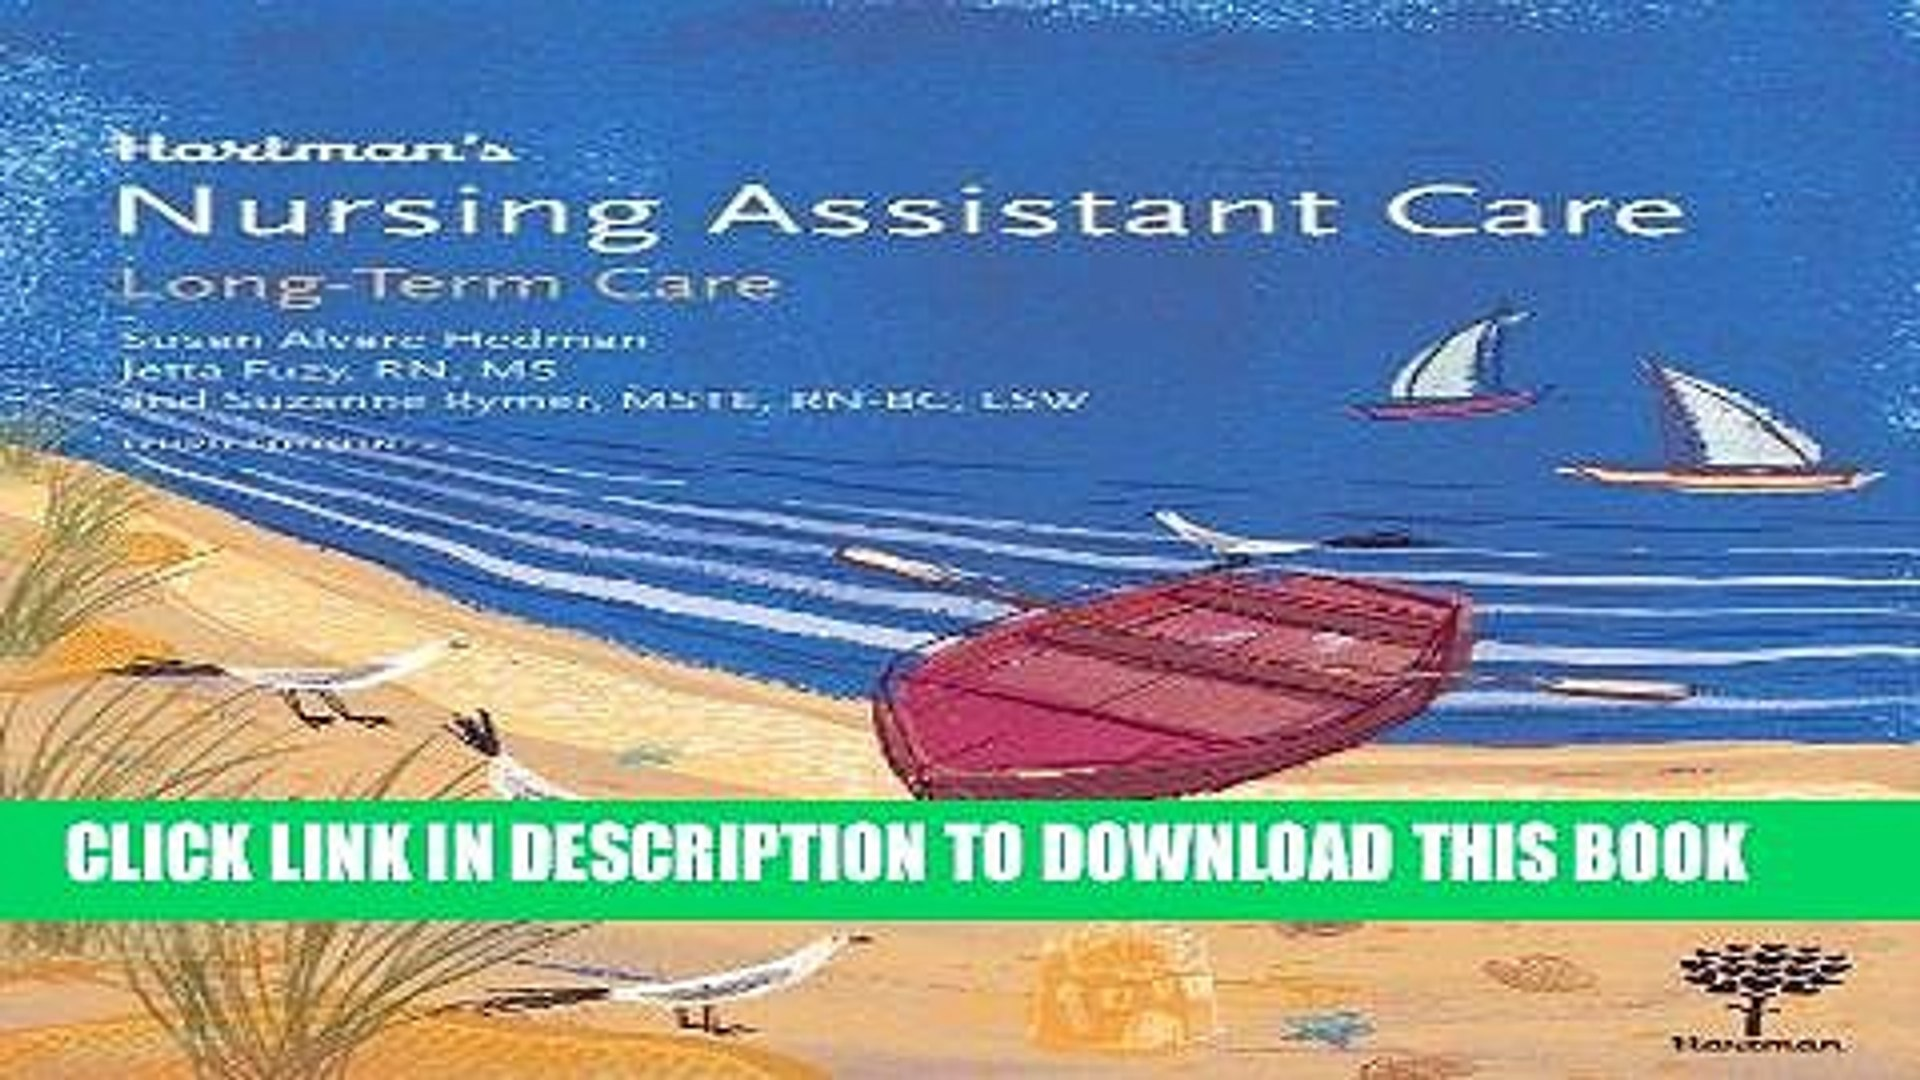 [PDF] Epub Hartman s Nursing Assistant Care: Long-Term Care, 3e Full Online